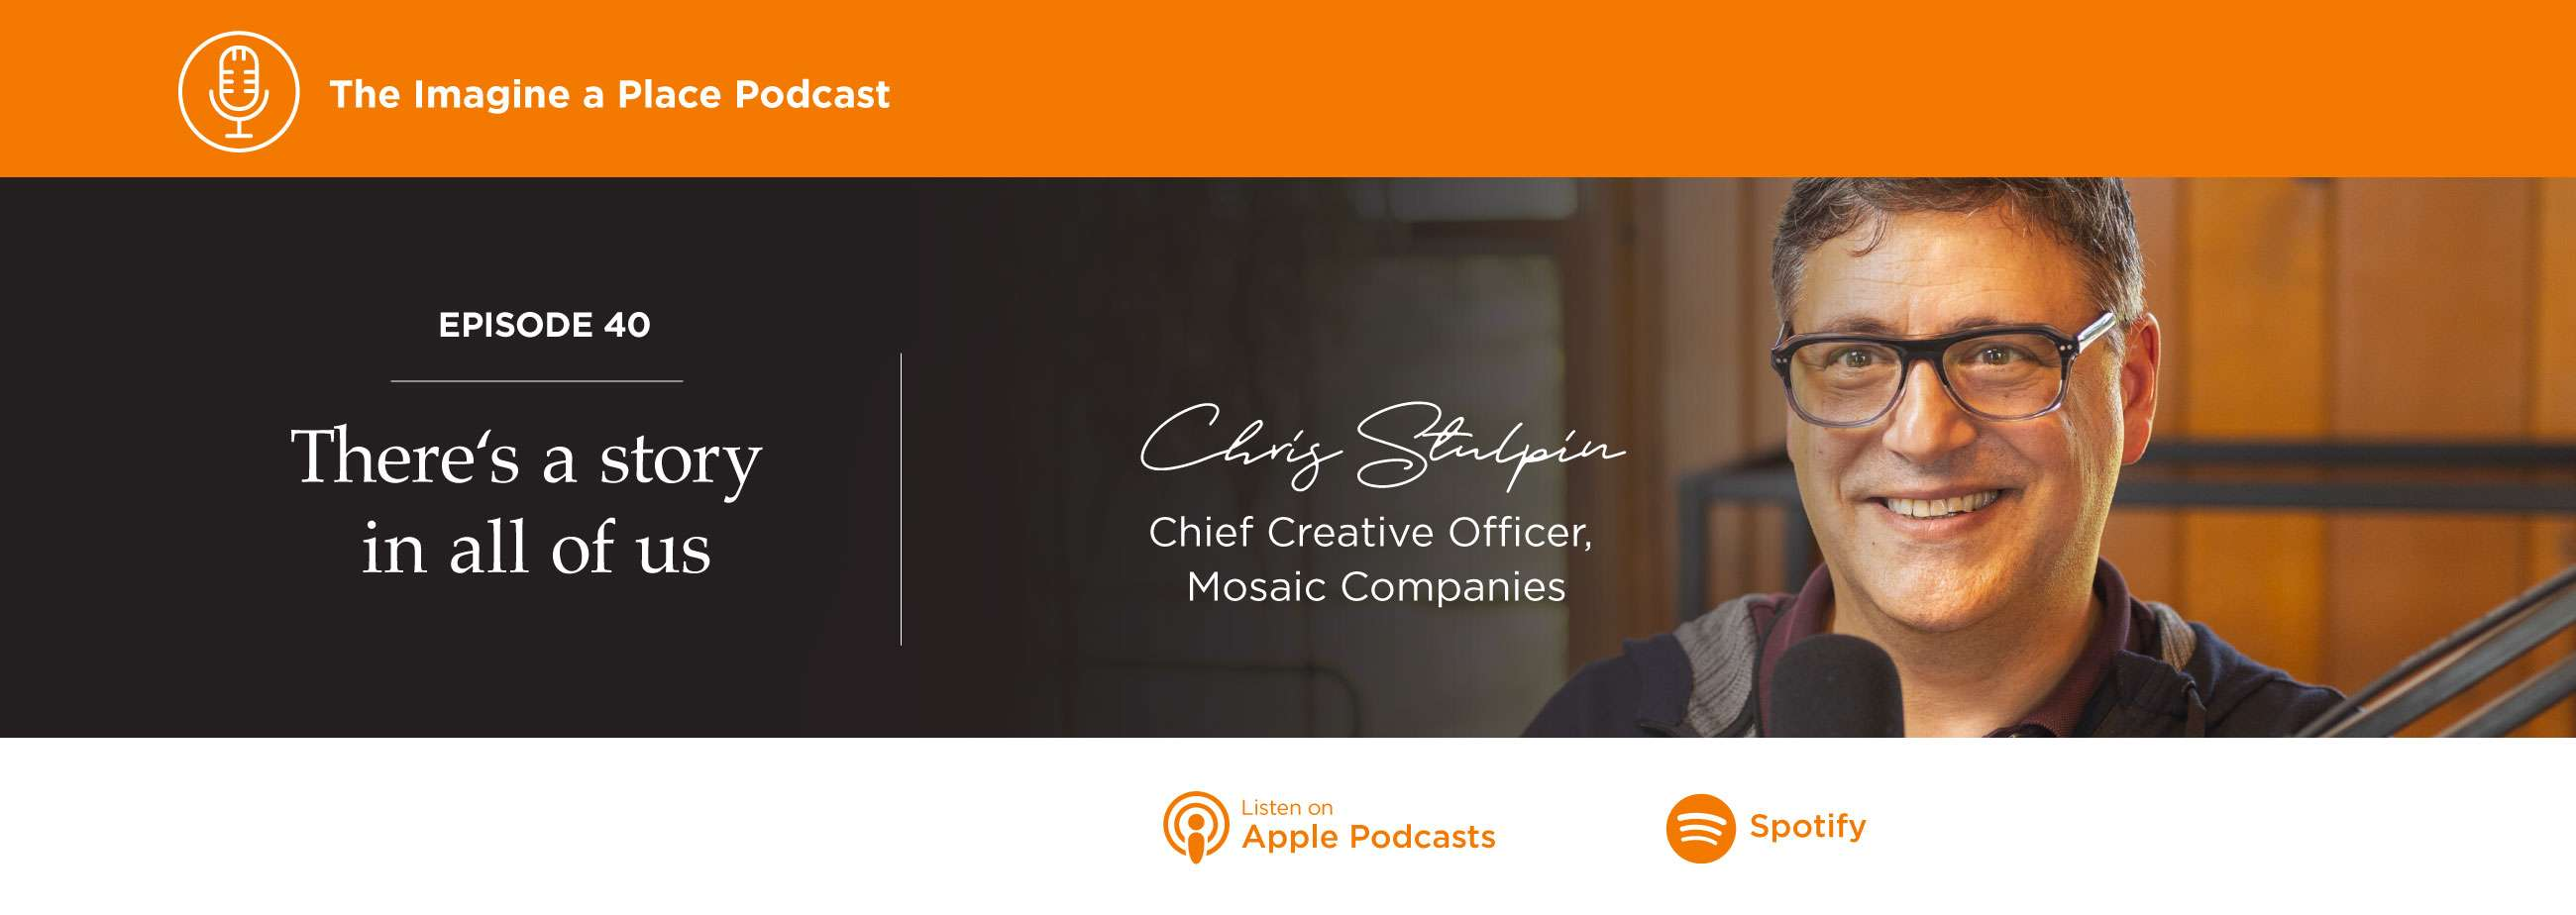 Imagine a Place Podcast with Chris Stulpin